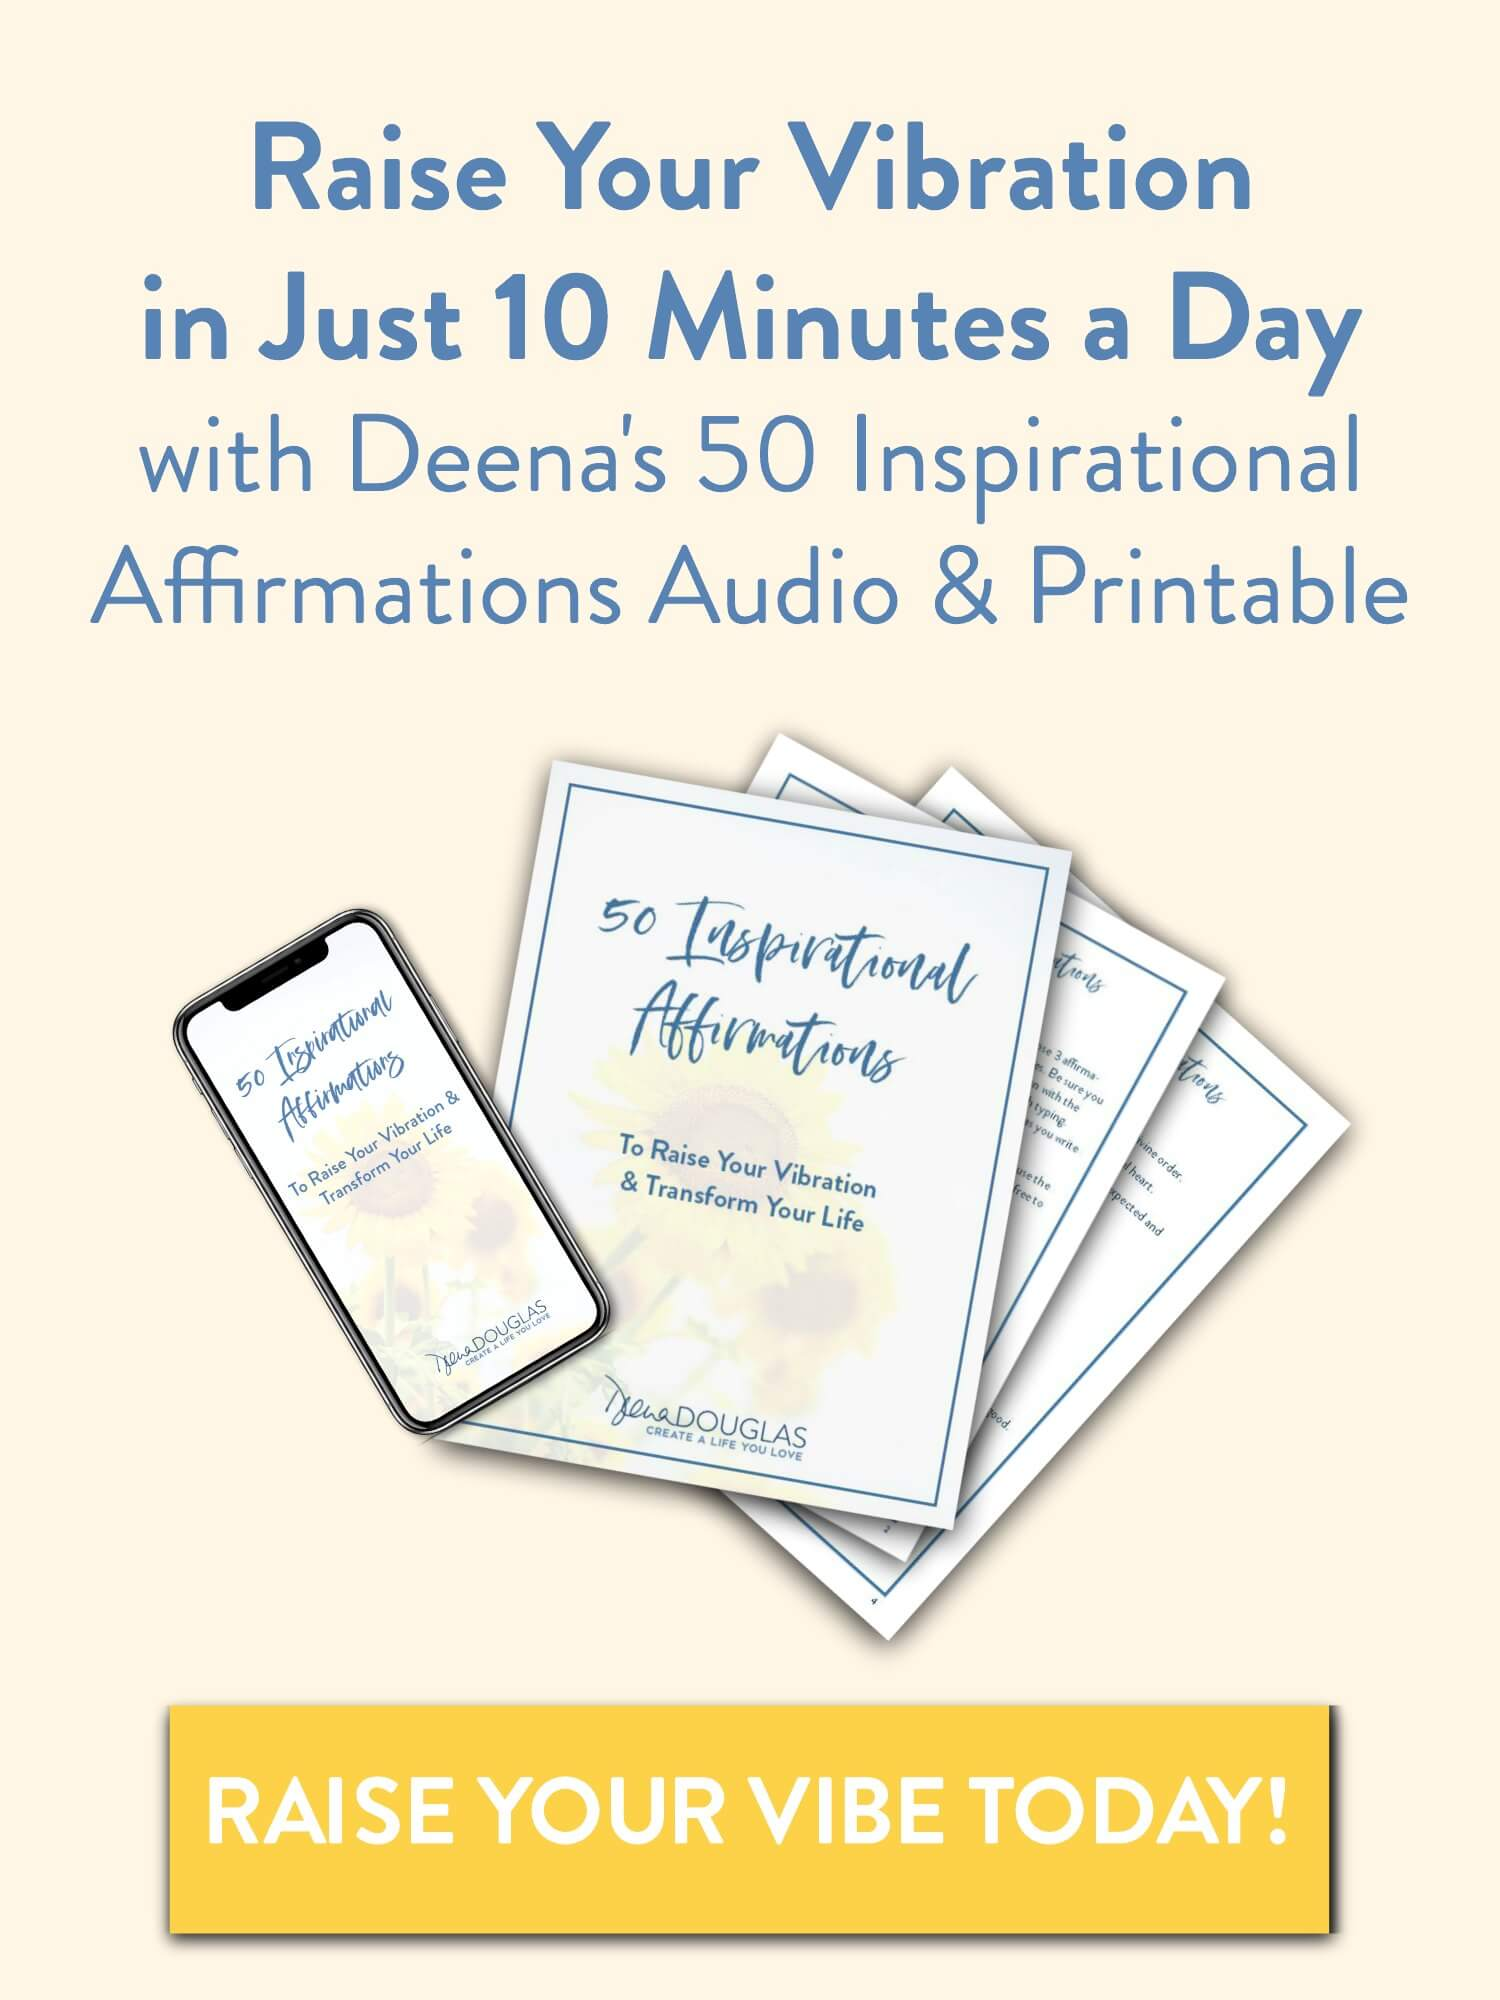 Get Deena's 50 Inspirational Affirmations Audio and Raise Your Vibration & Transform Your Life Today